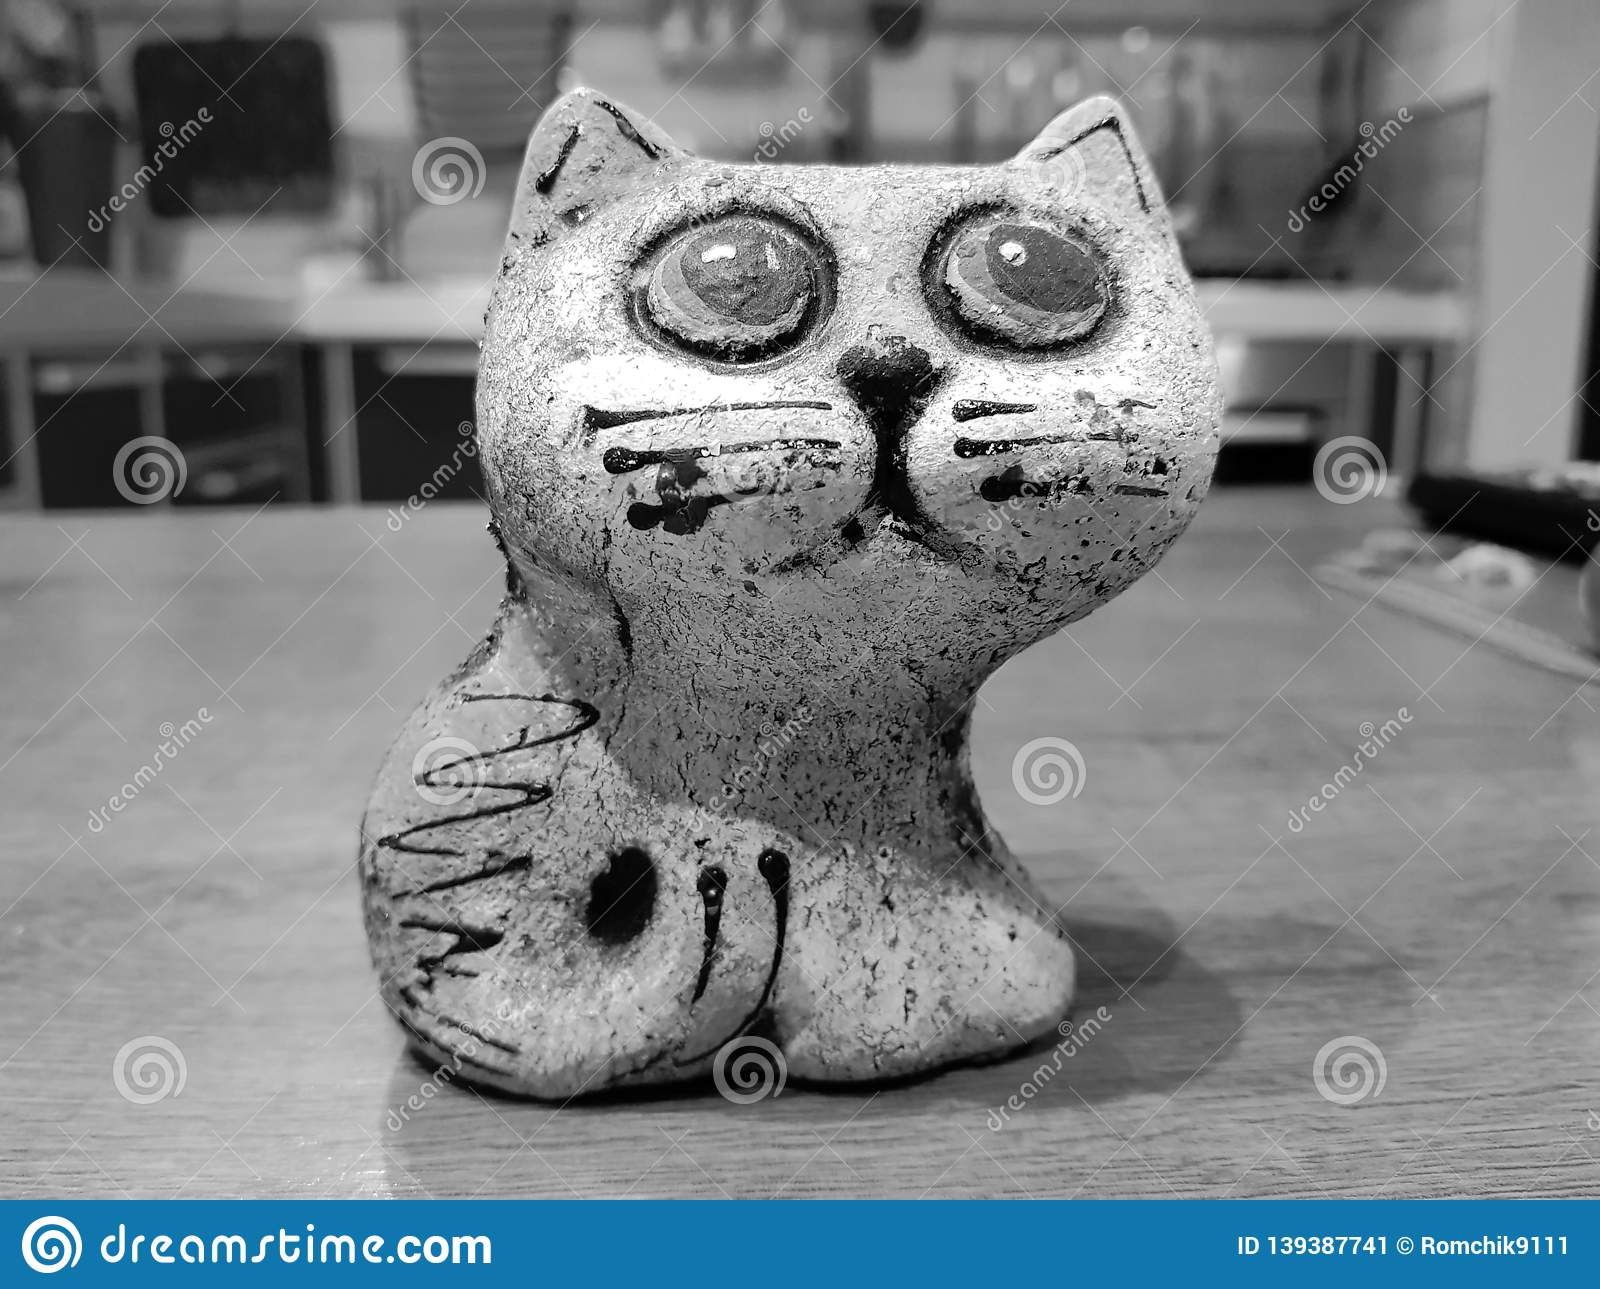 Colored ceramic cat with big eyes